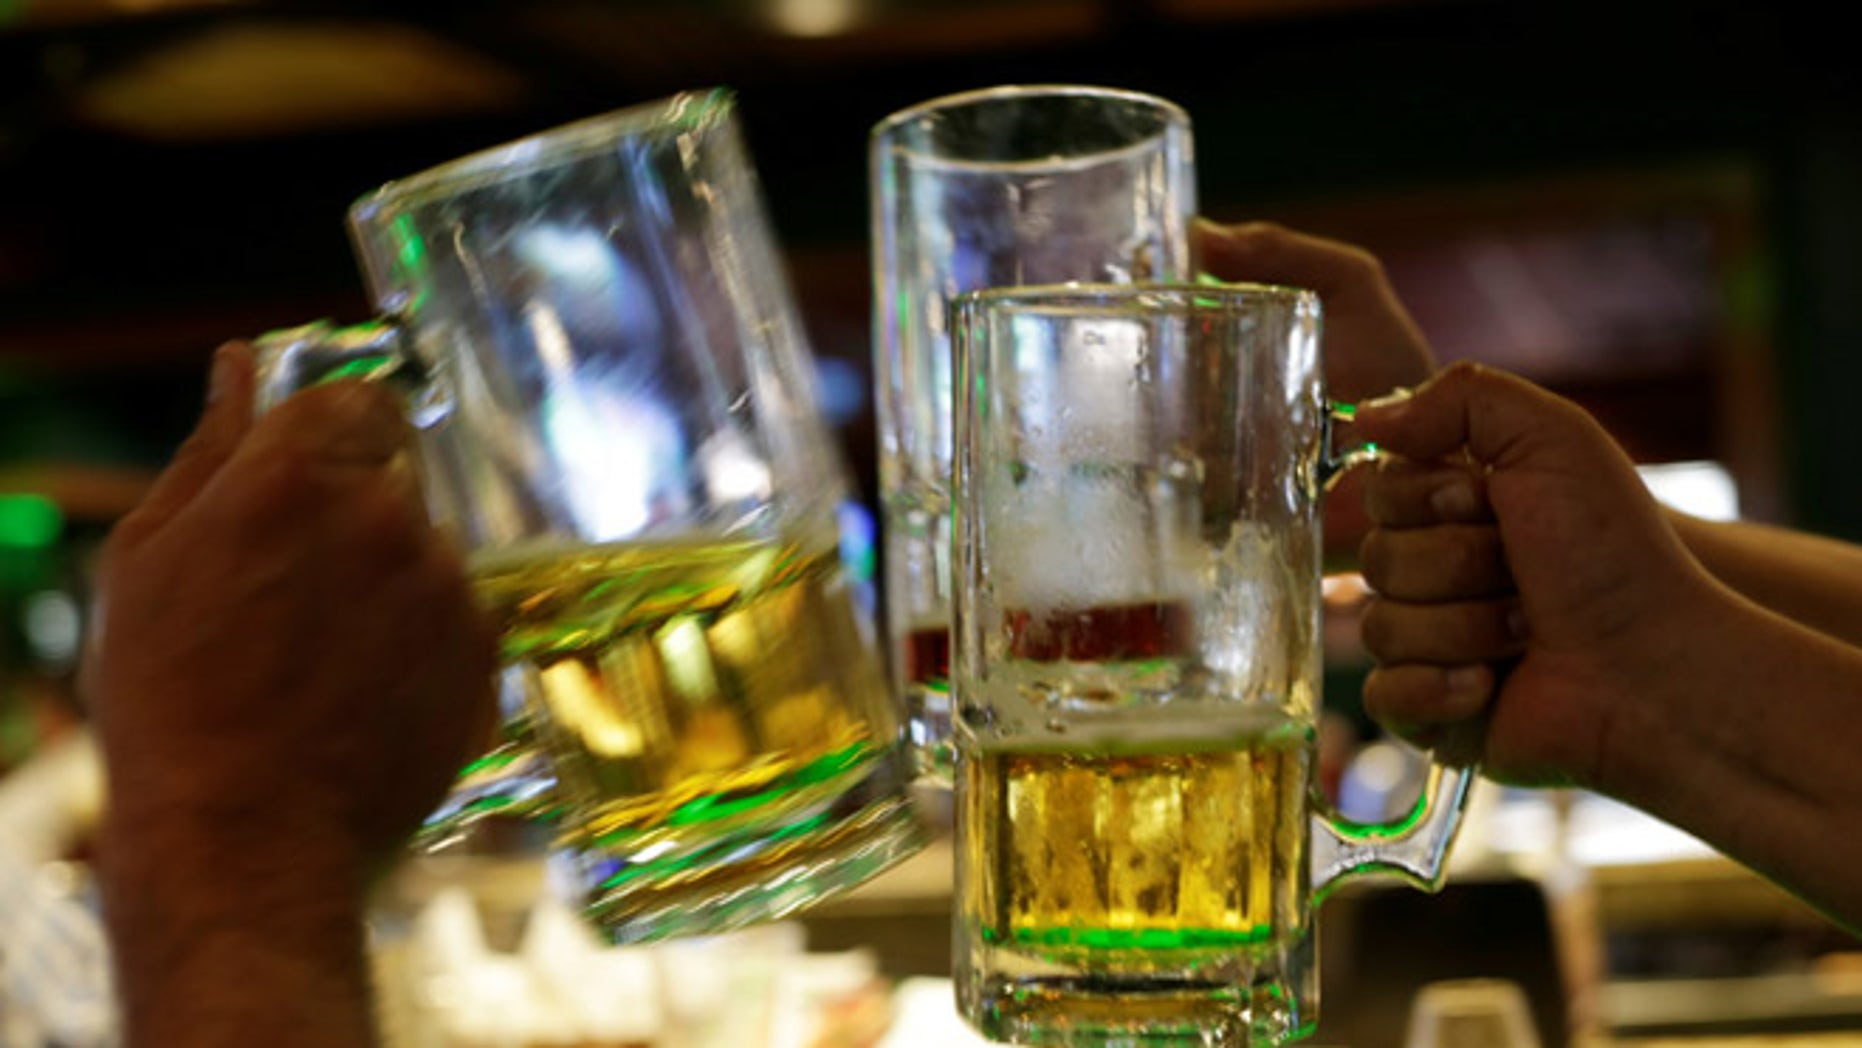 People toast with beer at a bar in Ciudad Juarez, Mexico June 20, 2017. Picture taken June 20, 2017.  REUTERS/Jose Luis Gonzalez - RTS18LIE